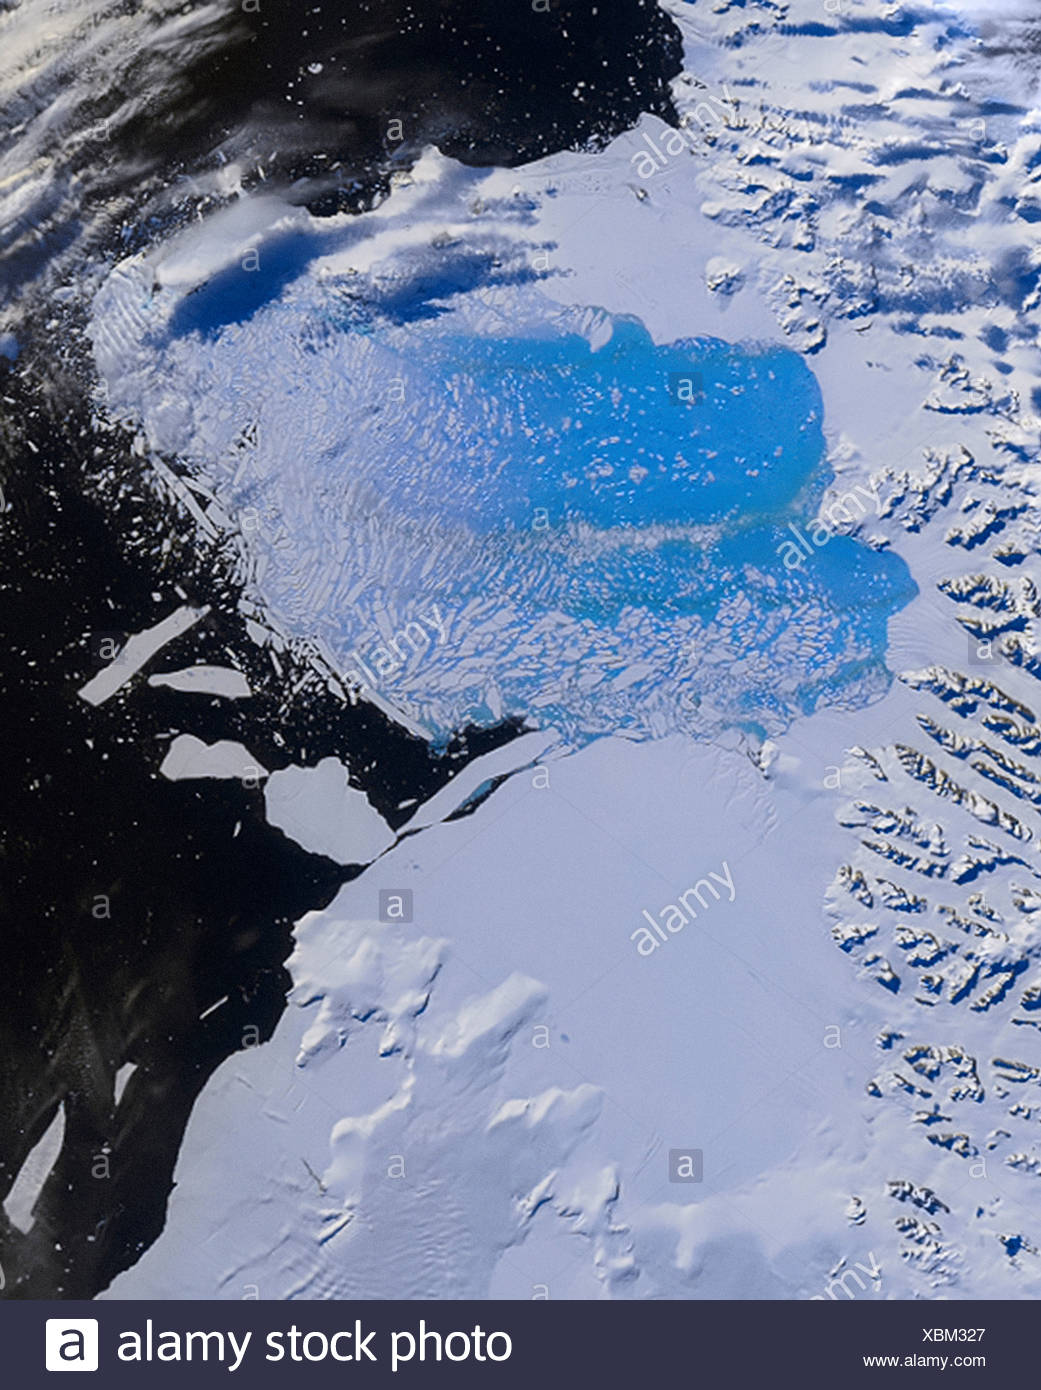 Collapse of Larsen B Ice Shelf - Stock Image